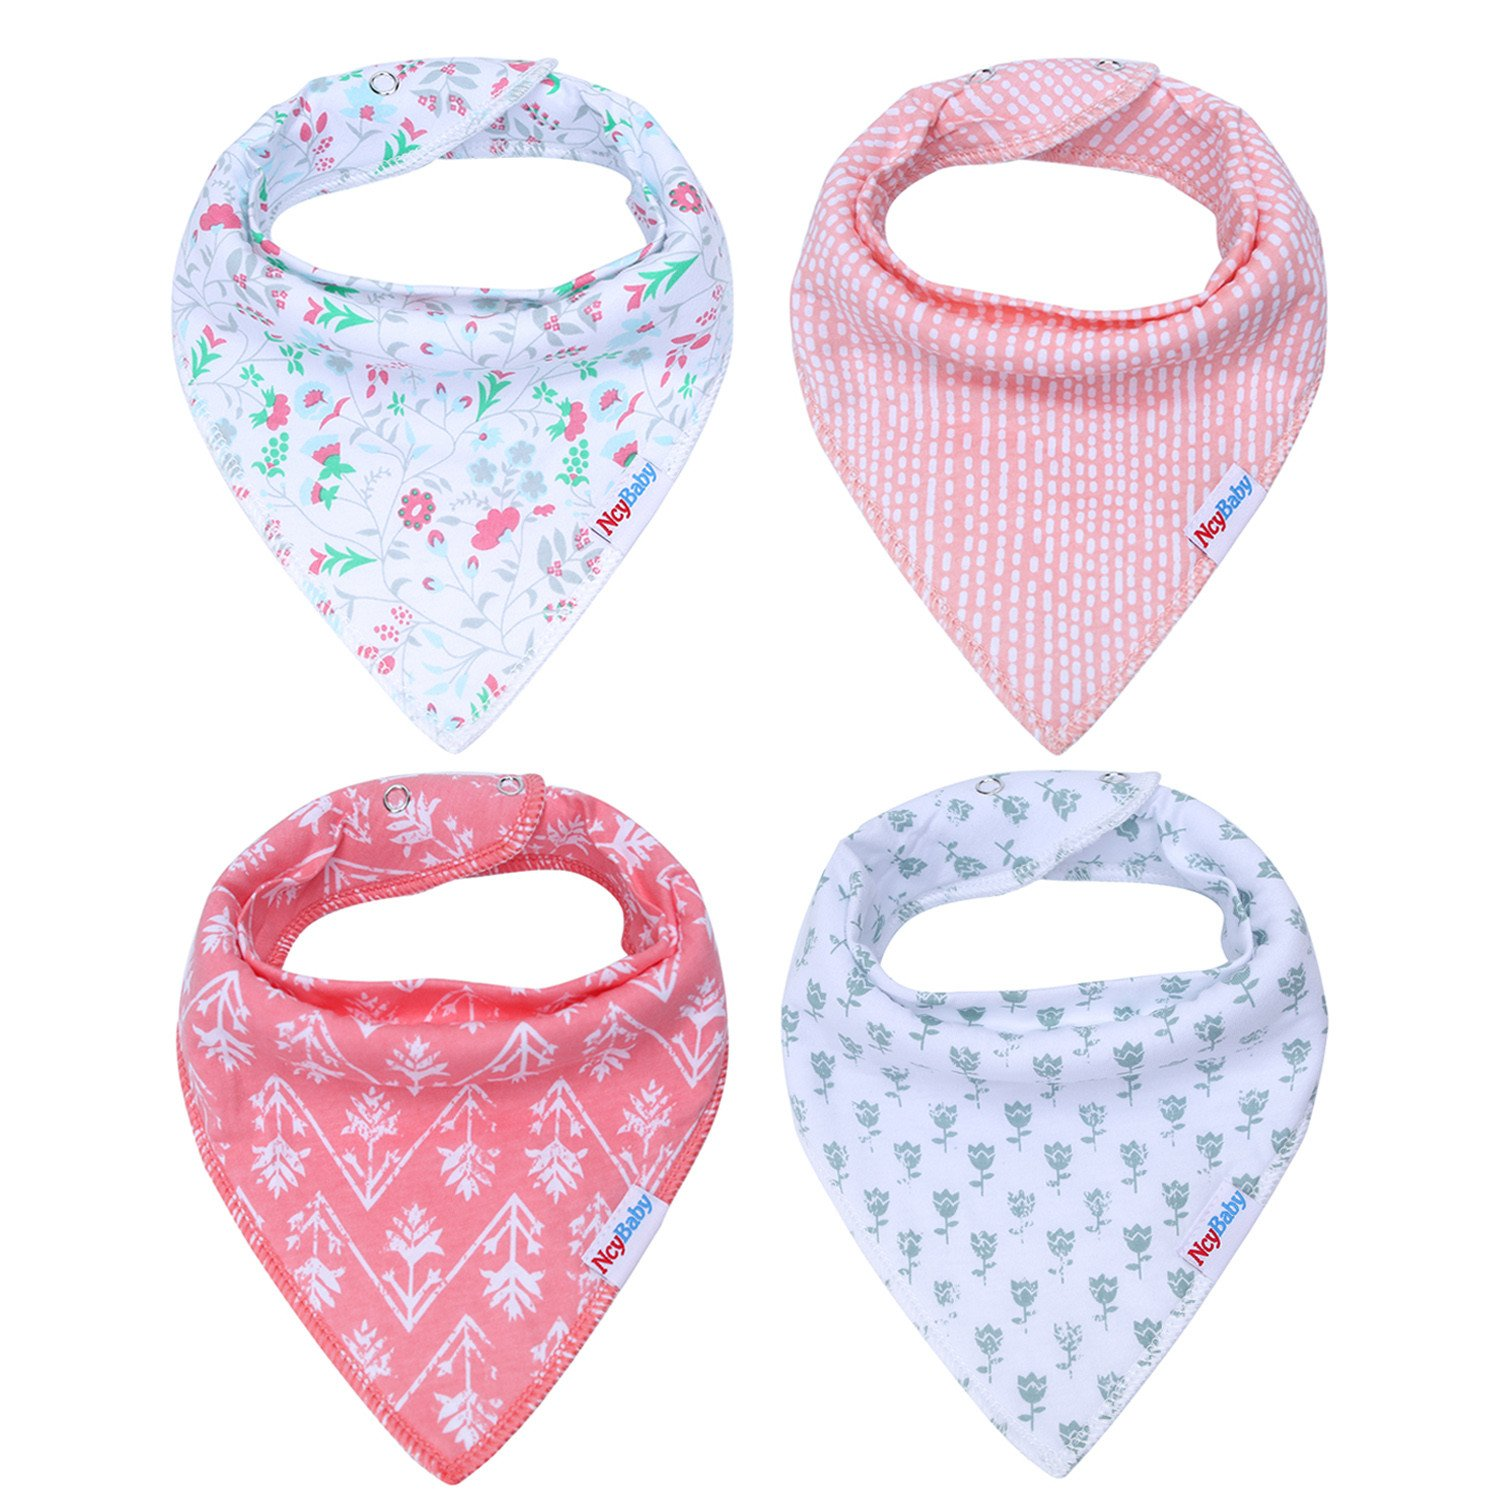 Storeofbaby Baby Bandana Drool Bibs for Girls Teething Stylish Shower Gift 4 Pack BabybibsI